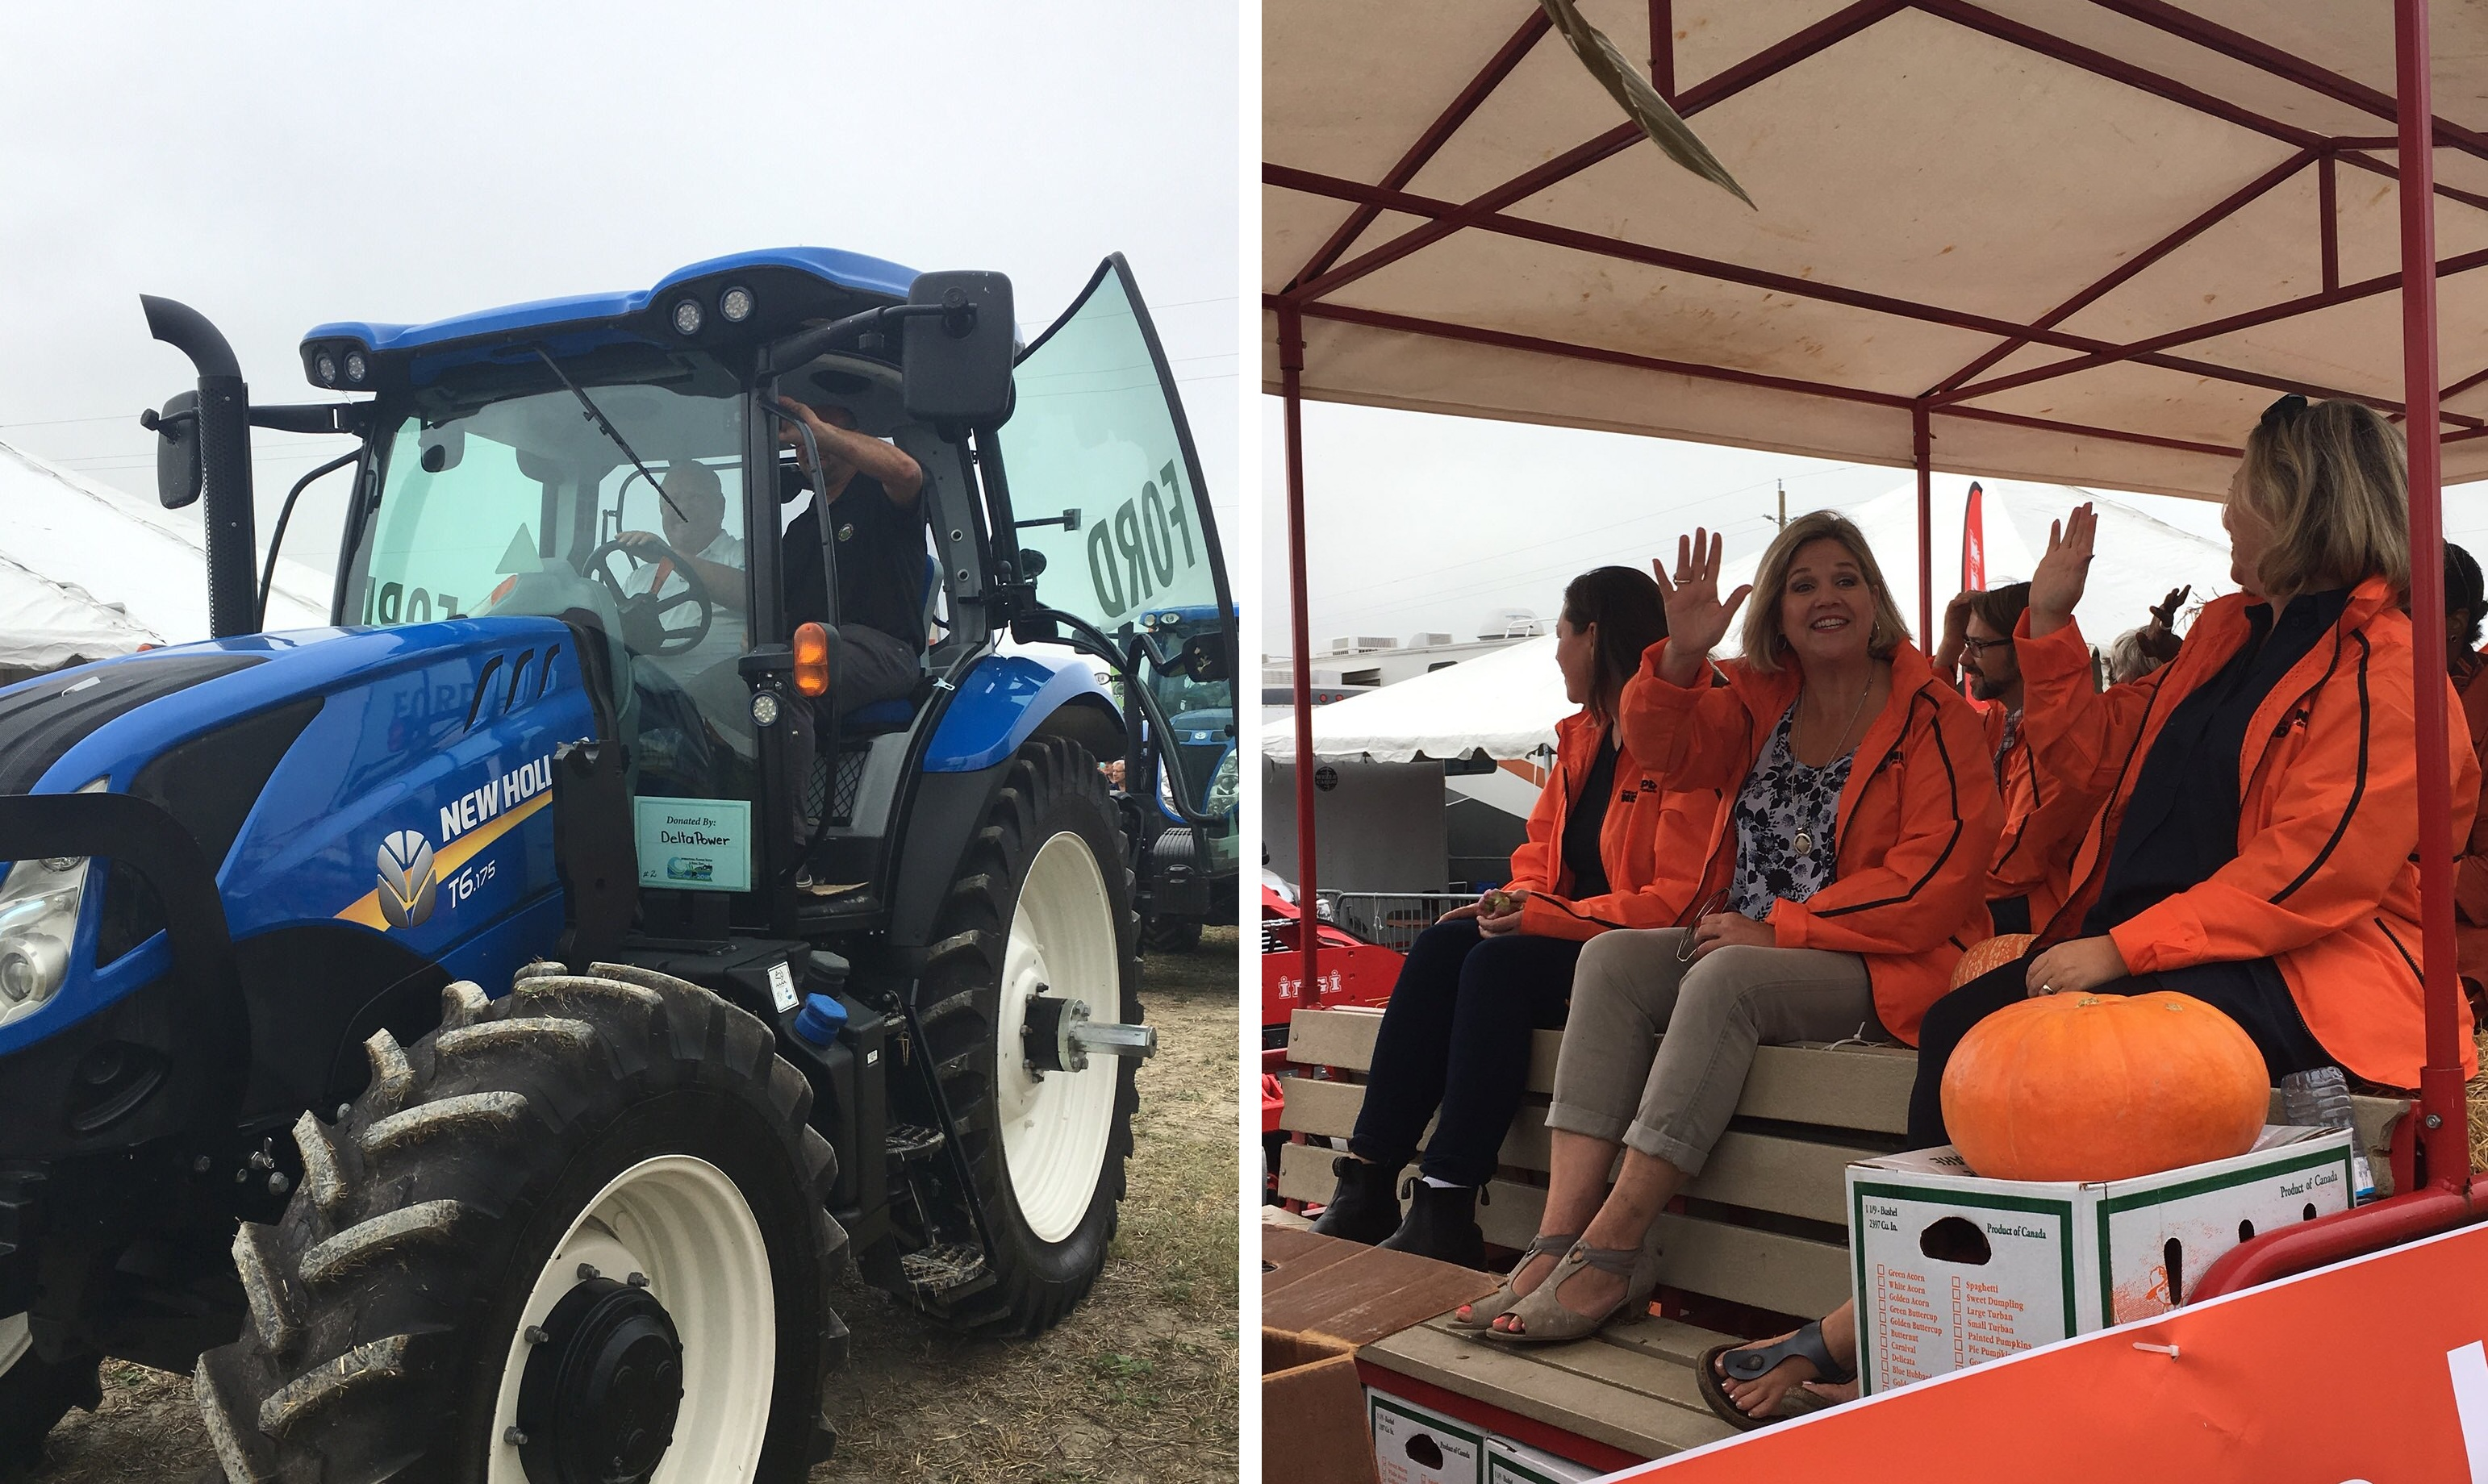 Ontario Premier Doug Ford (left) and Official Opposition leader Andrea Horwath (middle right) take part in the Opening Day Parade at the International Plowing Match in Pain Court. September 18, 2018. (Photos by Angelica Haggert)